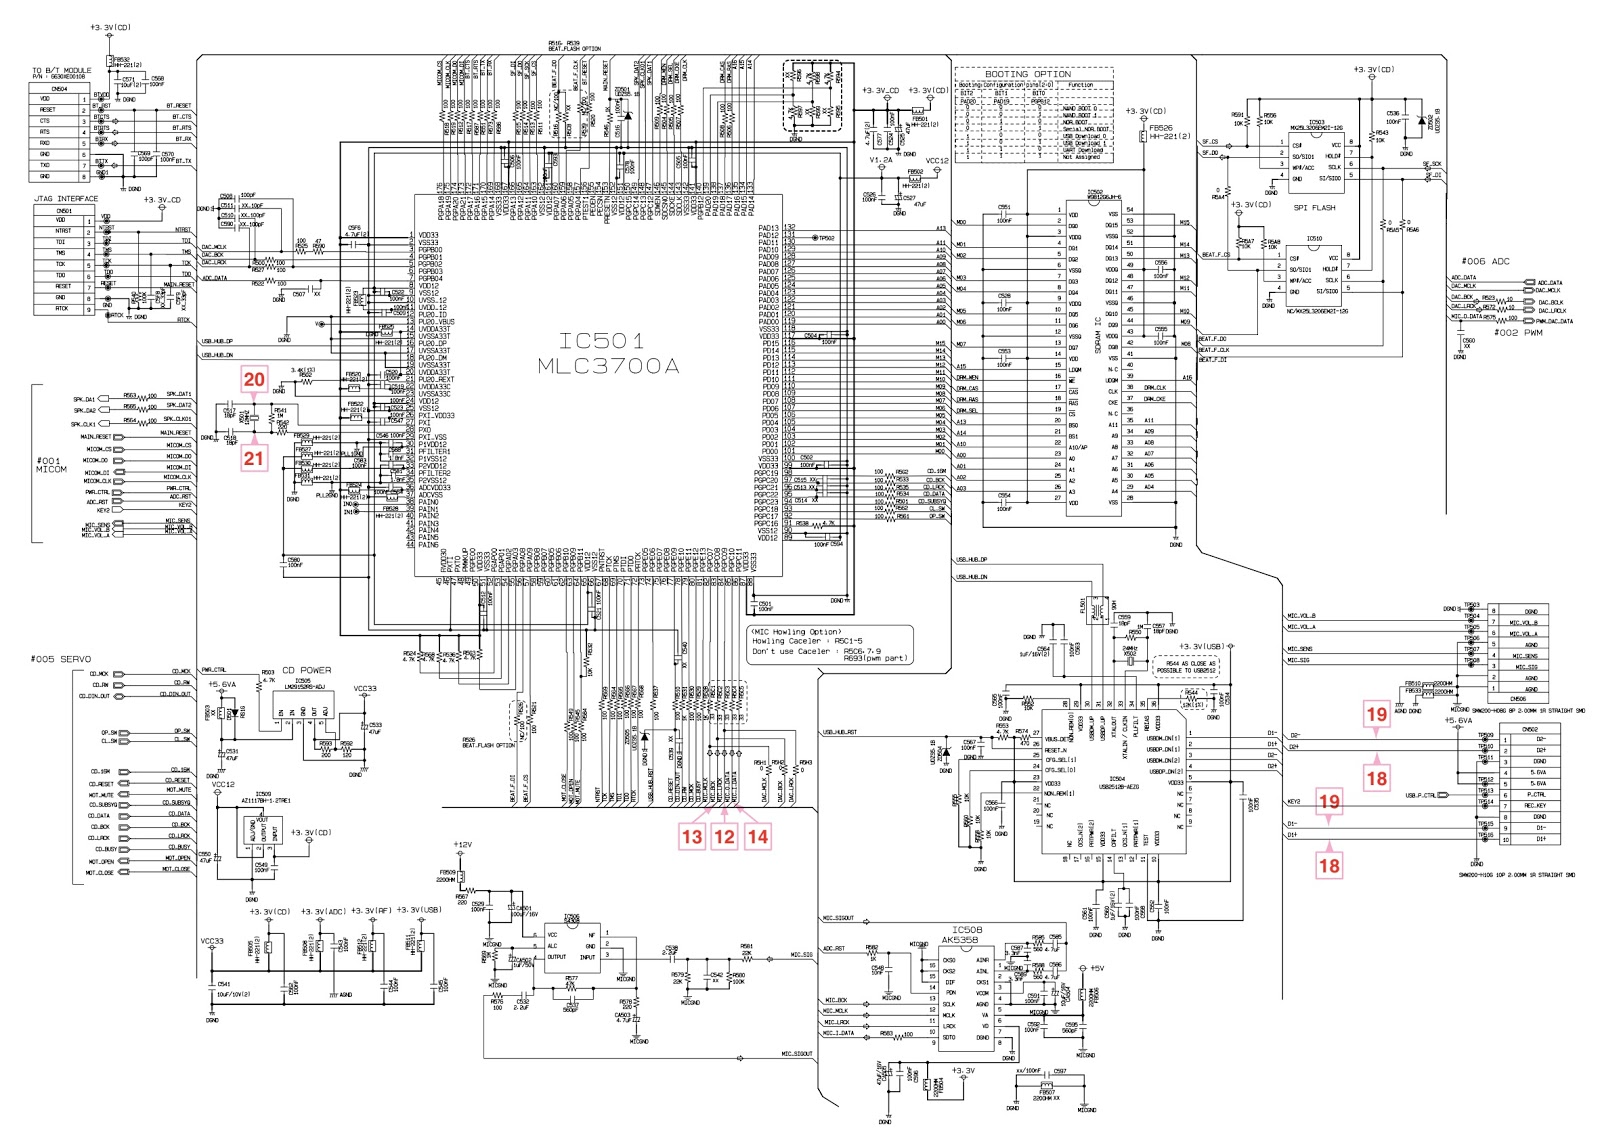 lg cm9730  u2013 smps and main amplifier  u2013 circuit diagram